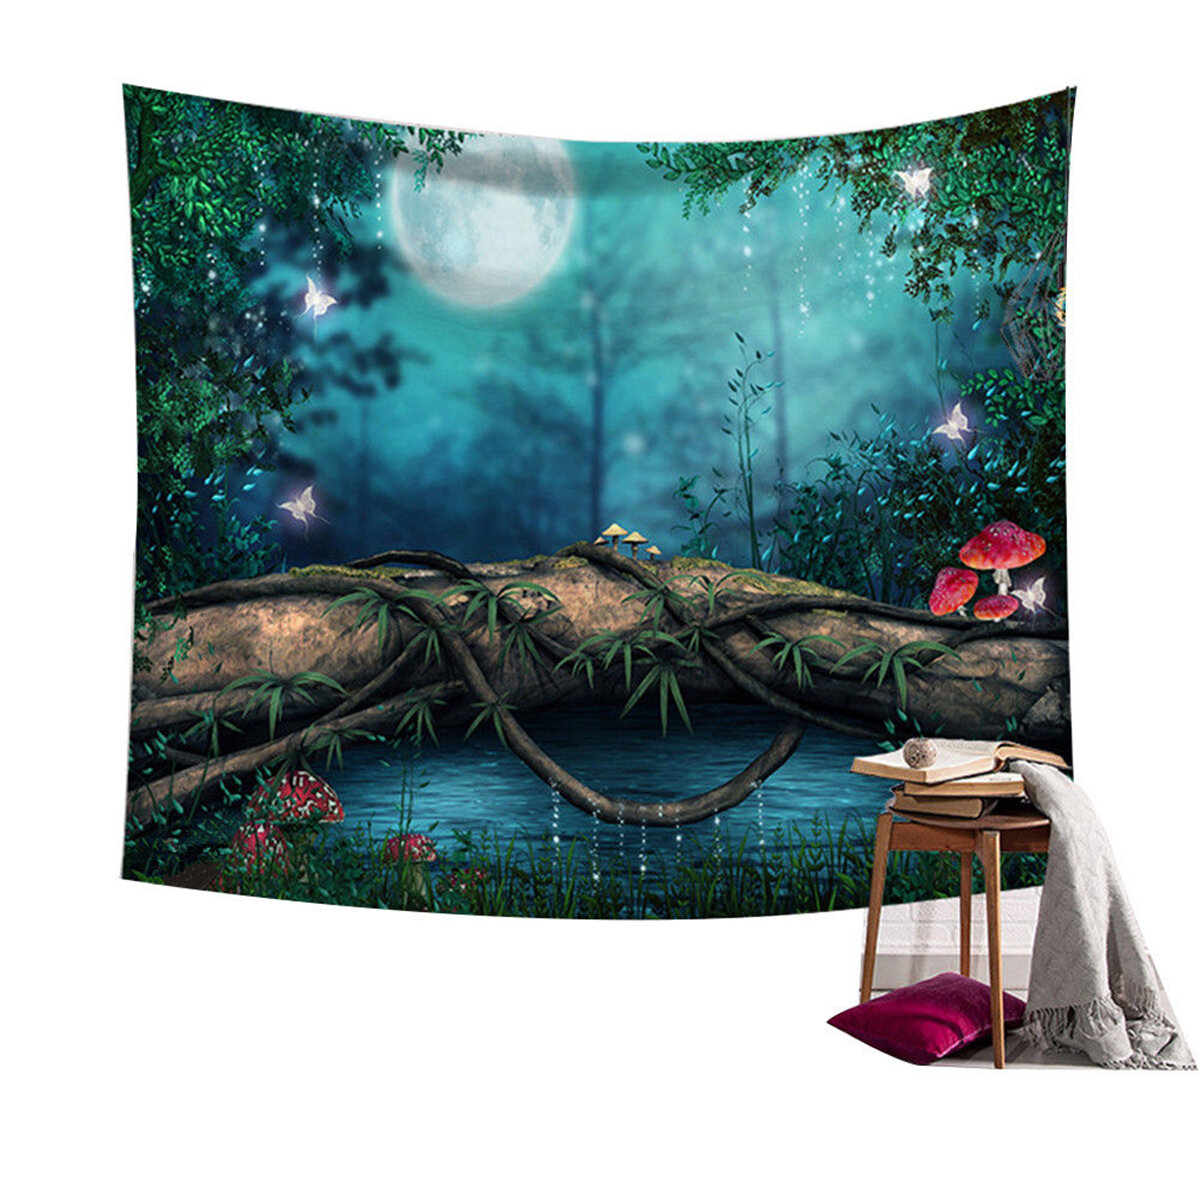 Fairy Forest Hanging Wall Tapestry Bohemian Hippie Throw